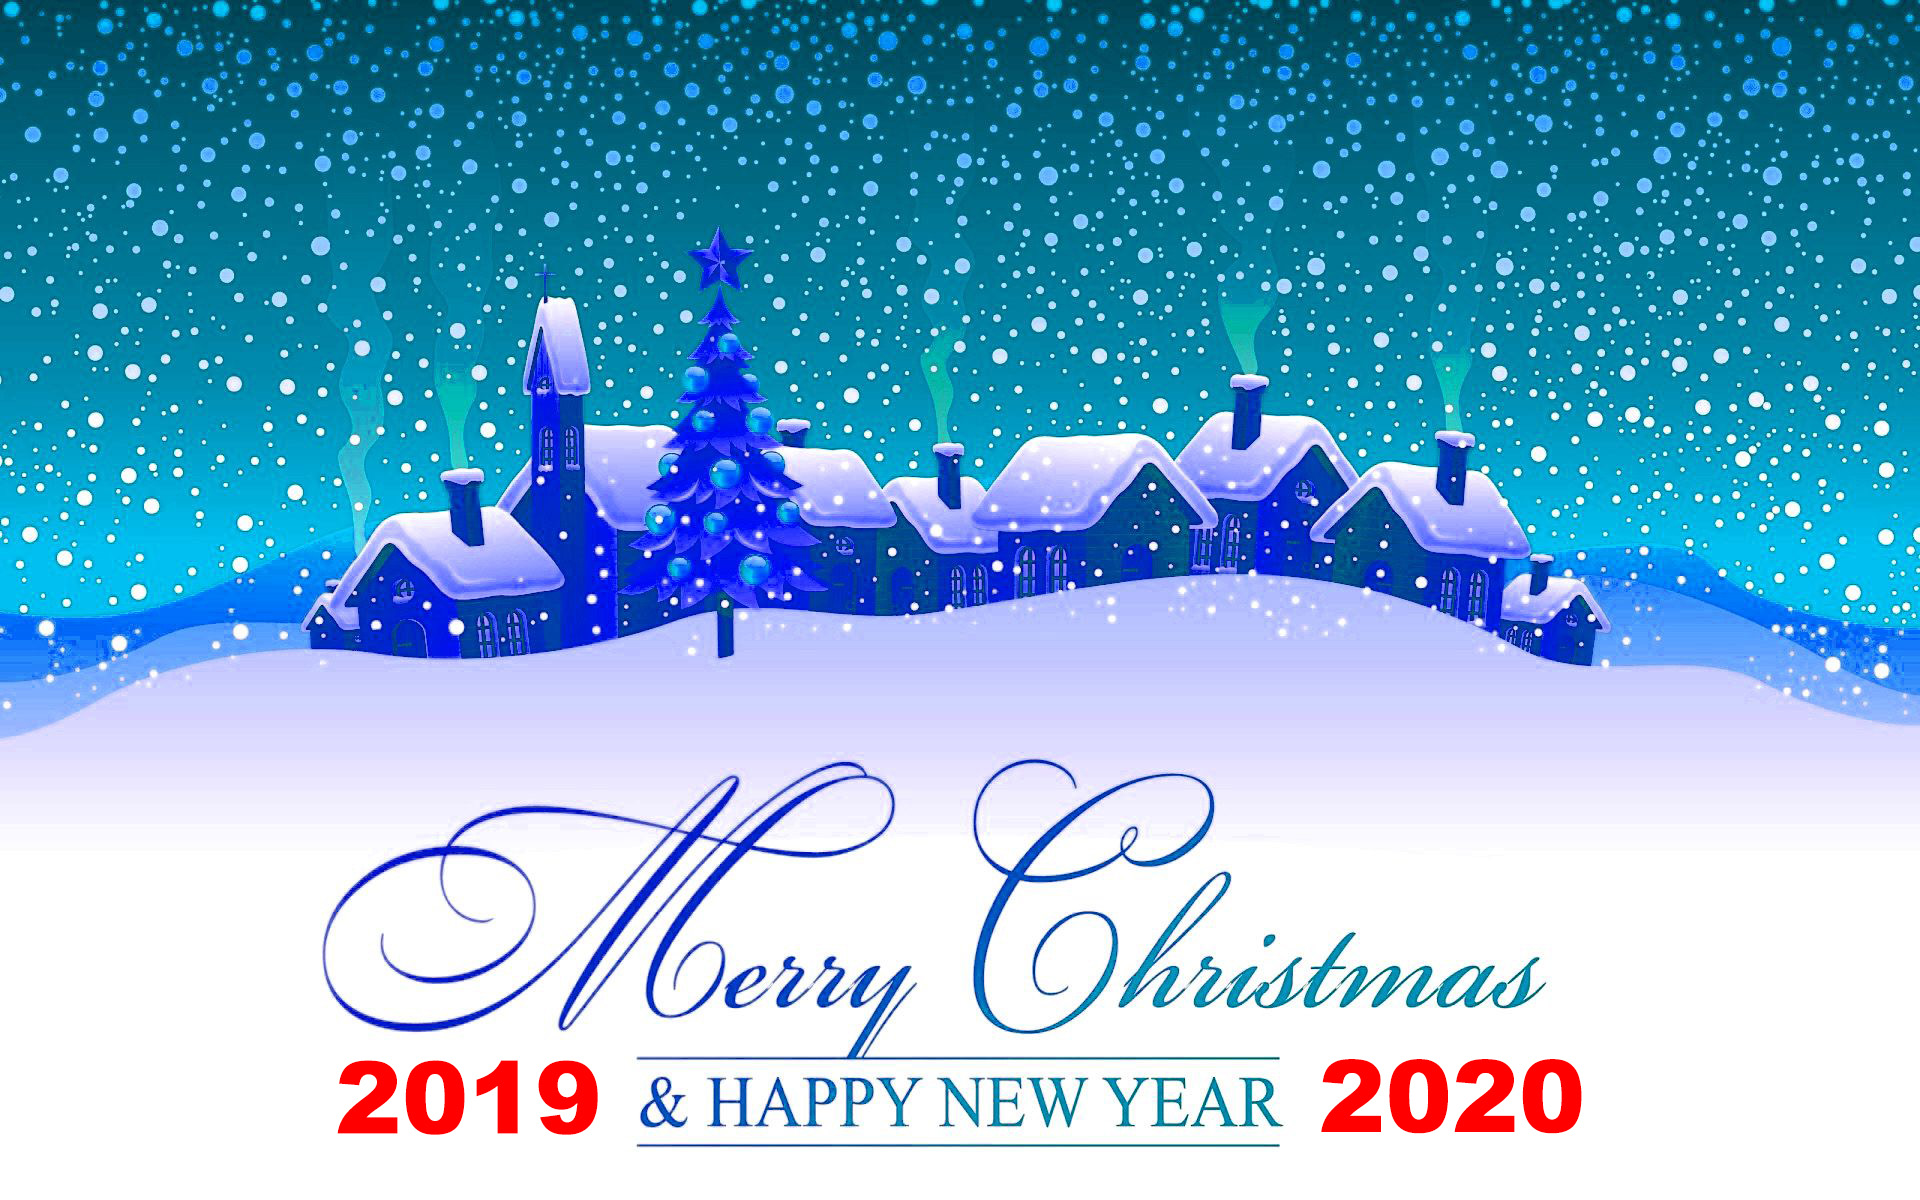 Merry Christmas 2019 And Happy New Year 2020